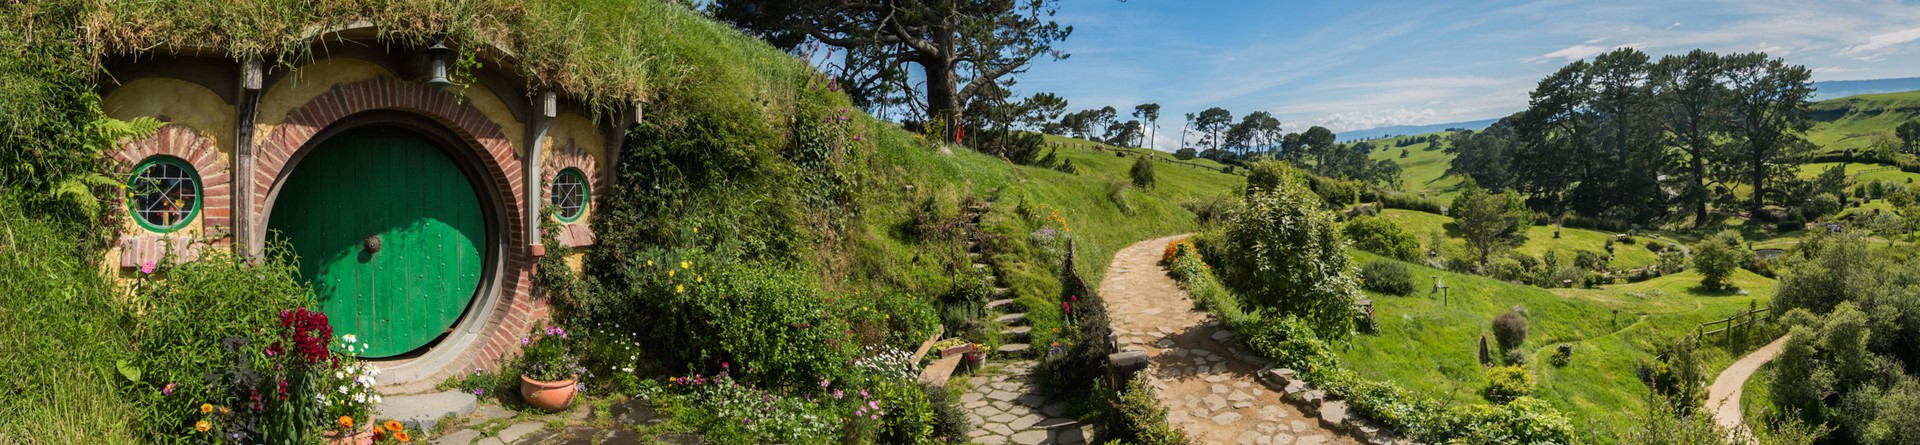 Middle-earth, Hobbiton Movie Set, Matamata, New Zealand